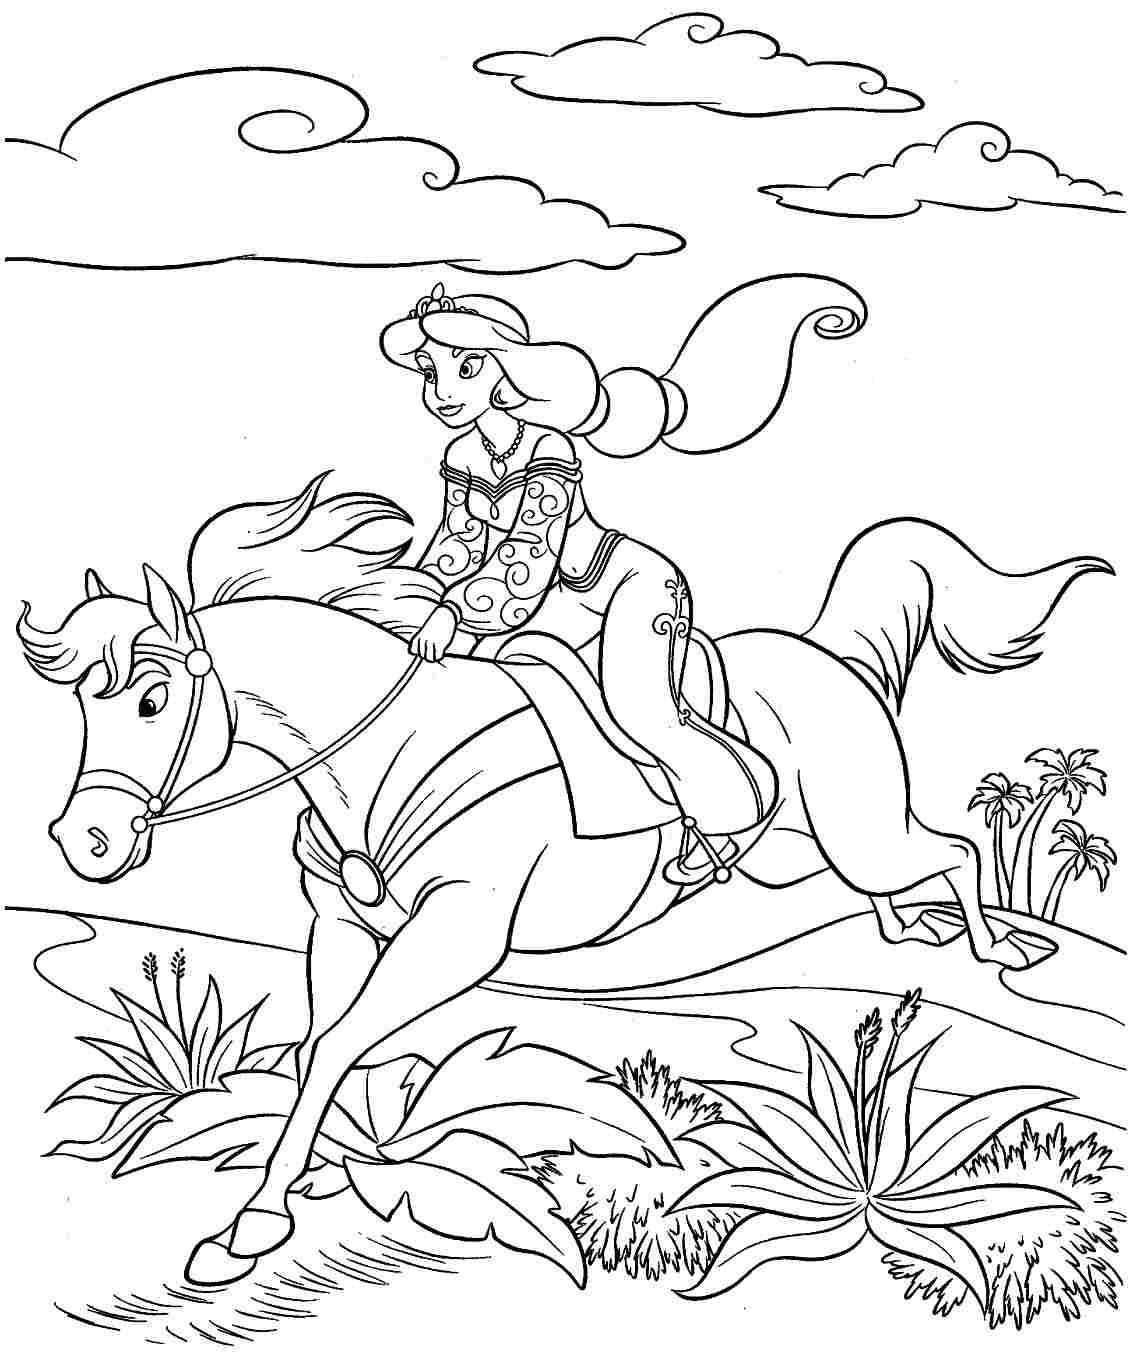 Coloring Pages Disney Princess Jasmine Printable For Kids Amp Boys 55383